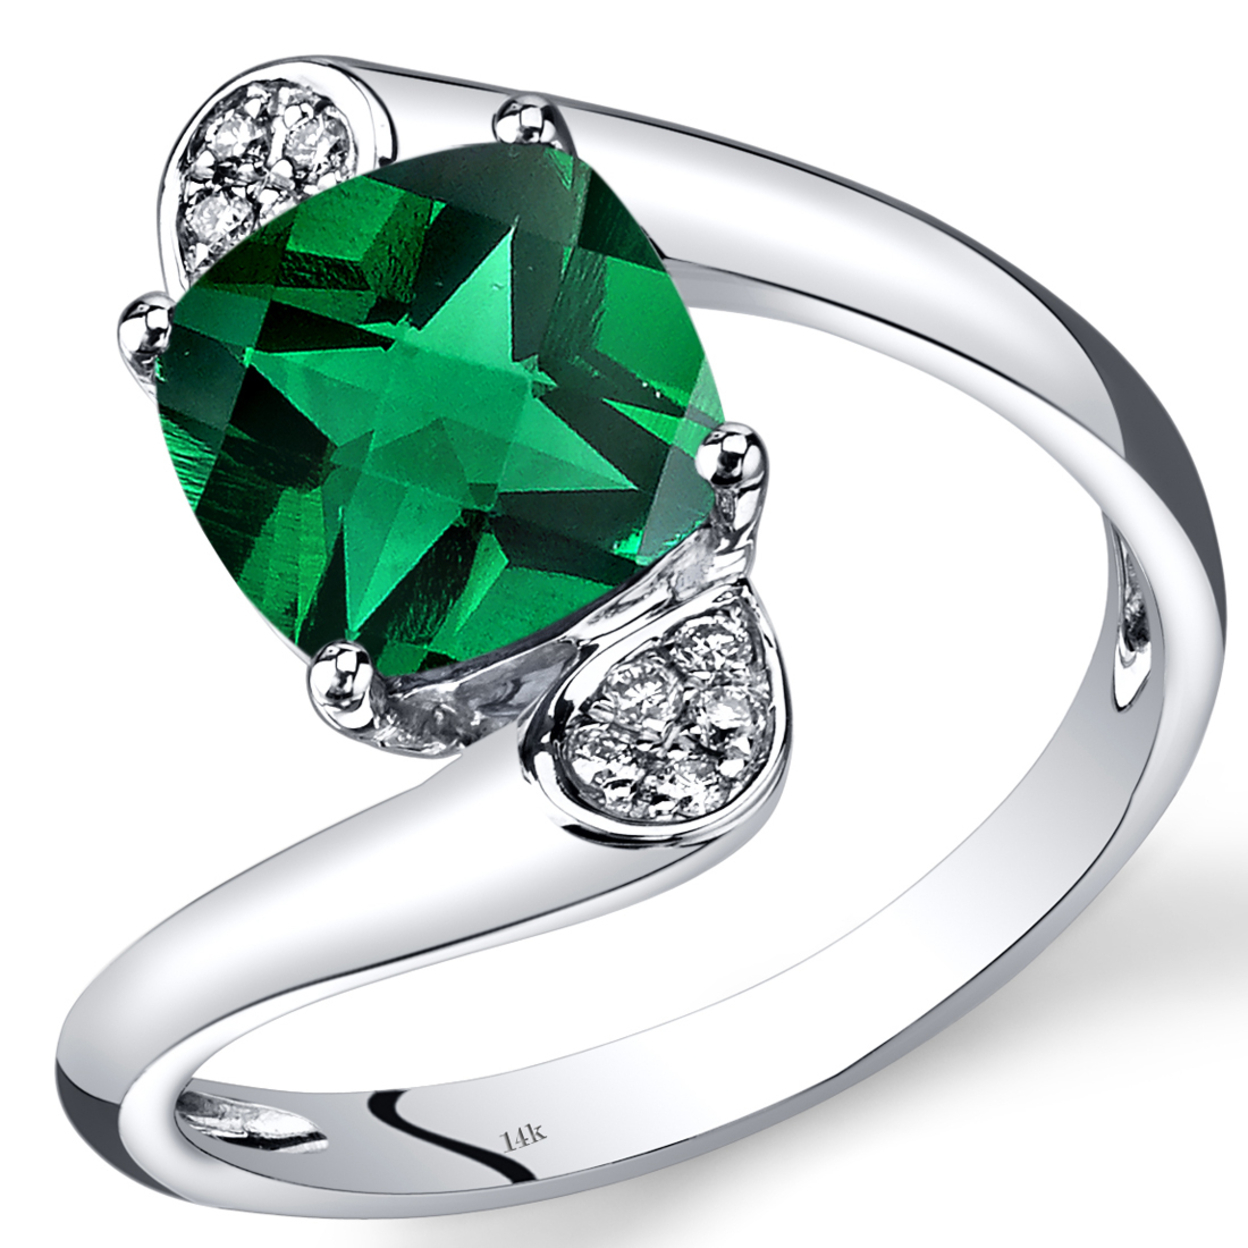 14k White Gold Created Emerald Diamond Bypass Ring Cushion Cut 2.08 Carats Total R62598